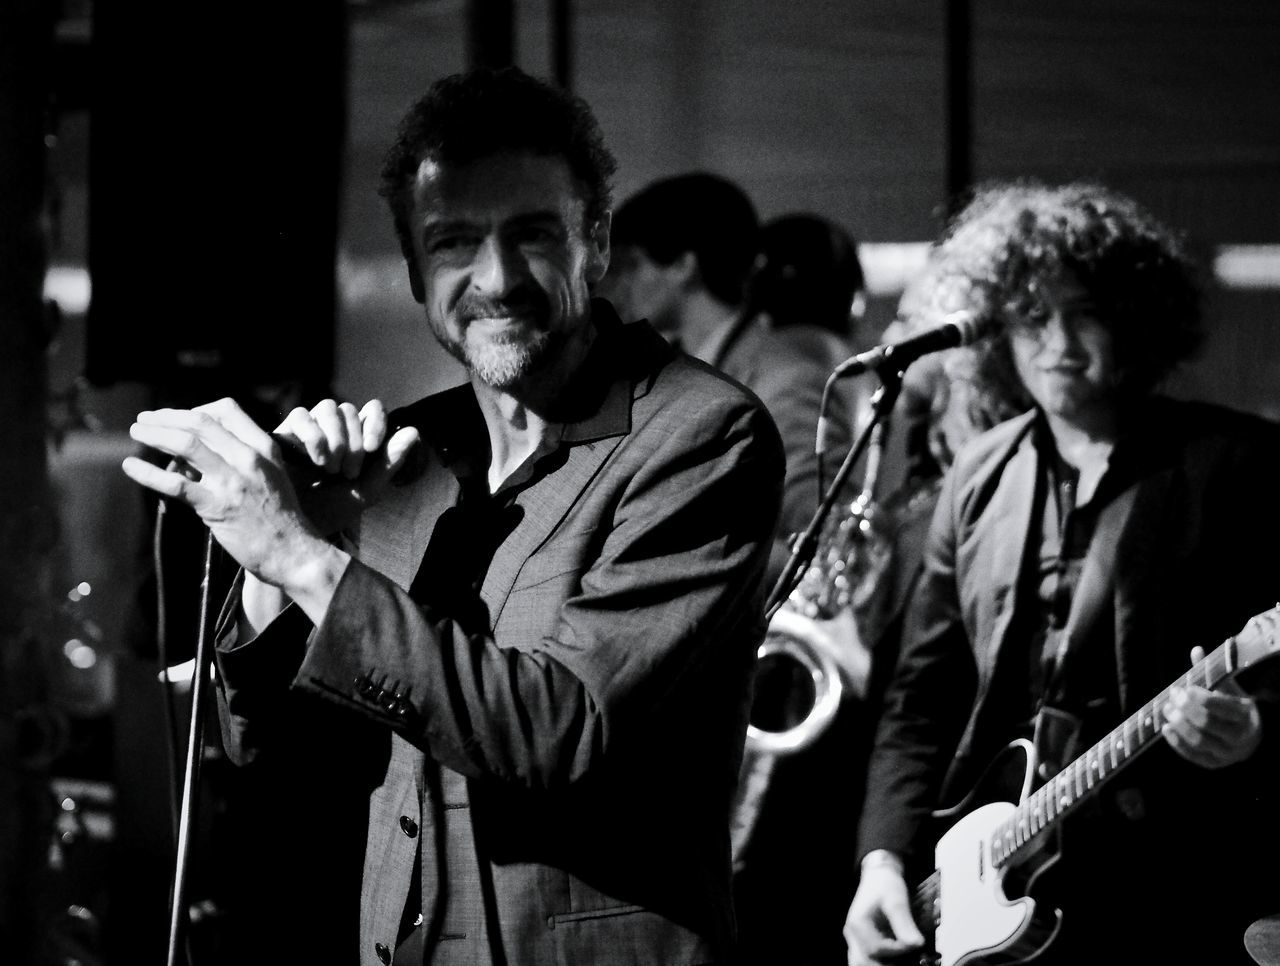 Music Performance Only Men Jazz Music Musician Music Is My Life Music Brings Us Together Music Photography  Rock N Roll Black & White Photography